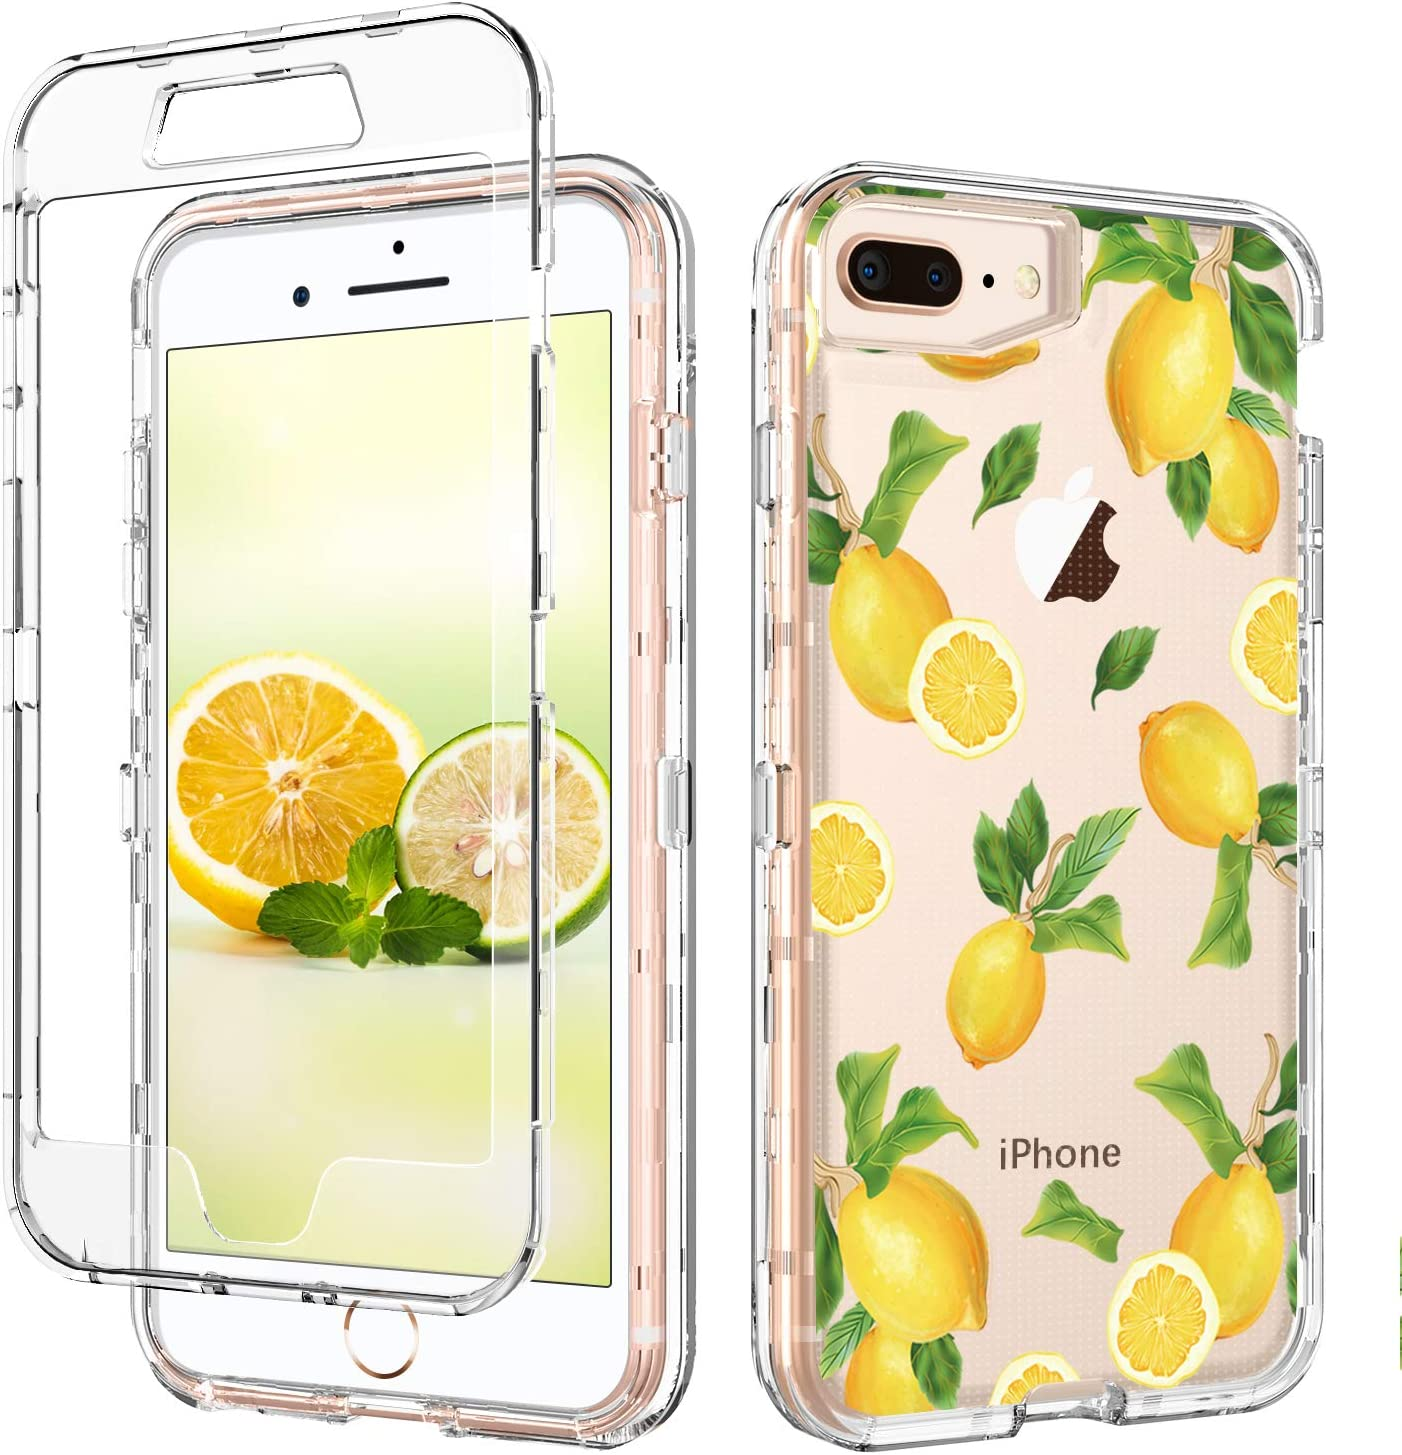 GUAGUA iPhone 8 Plus Case iPhone 7 Plus Case Clear Transparent Cover Lemon Fruit Printed Three Layer Hybrid Hard Plastic Soft Rubber Shockproof Protective Phone Case for iPhone 8 Plus / 7 Plus,Yellow